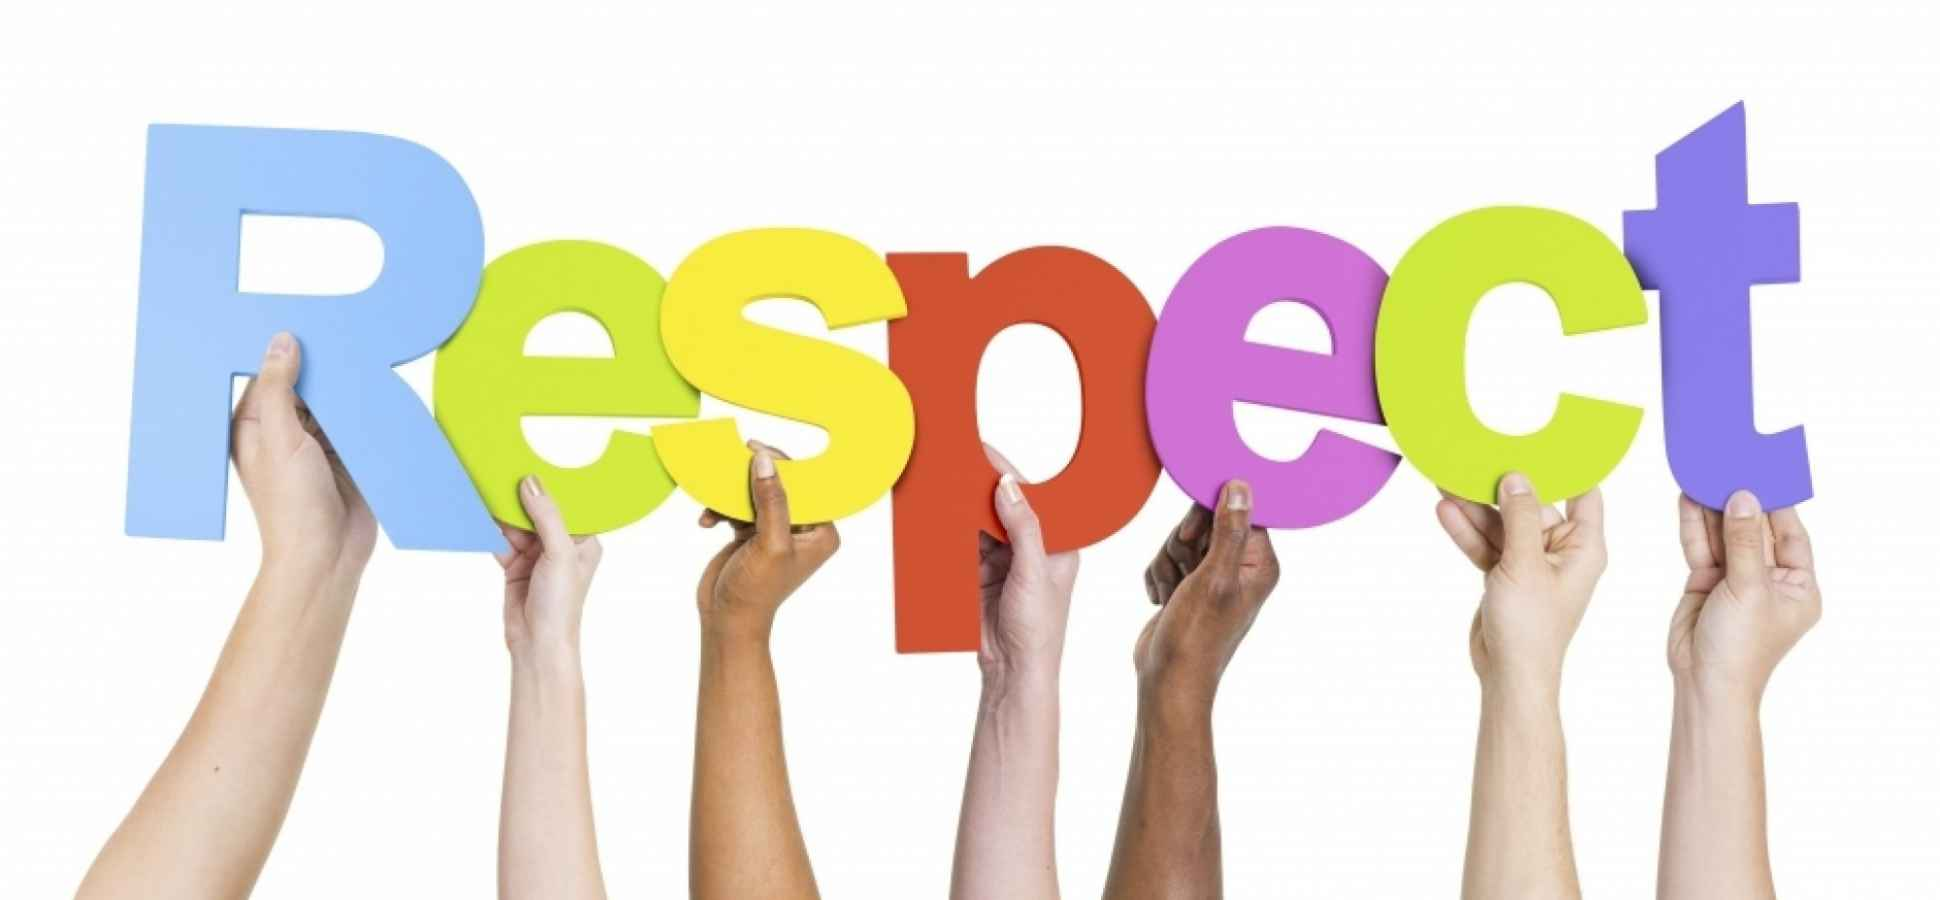 5 simple ways to gain respect | inc